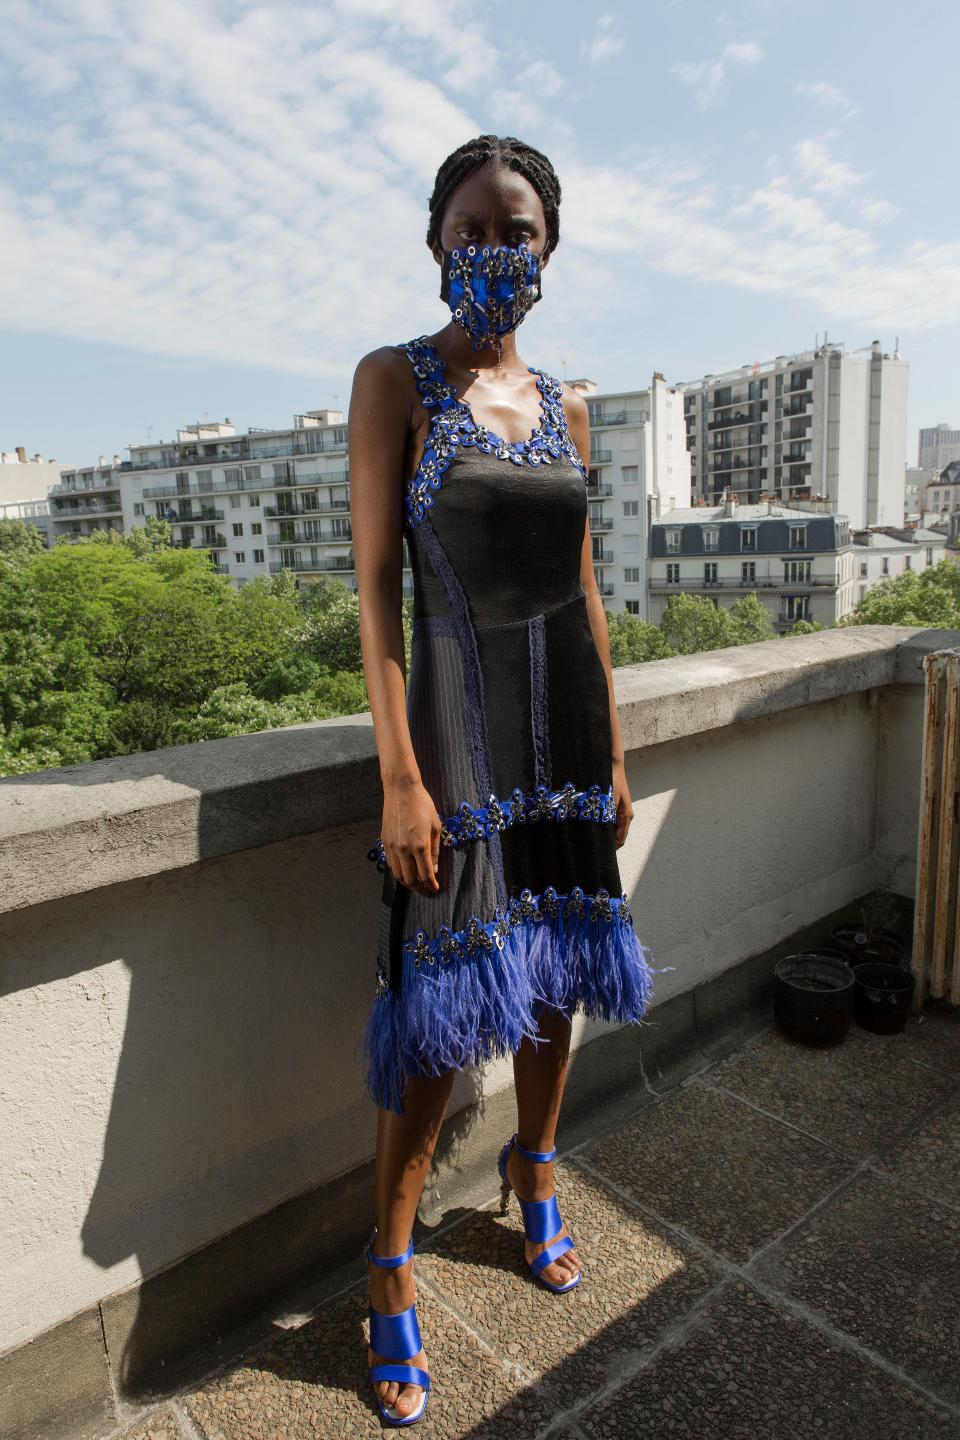 One of the latest Koché's dress created during lockdown